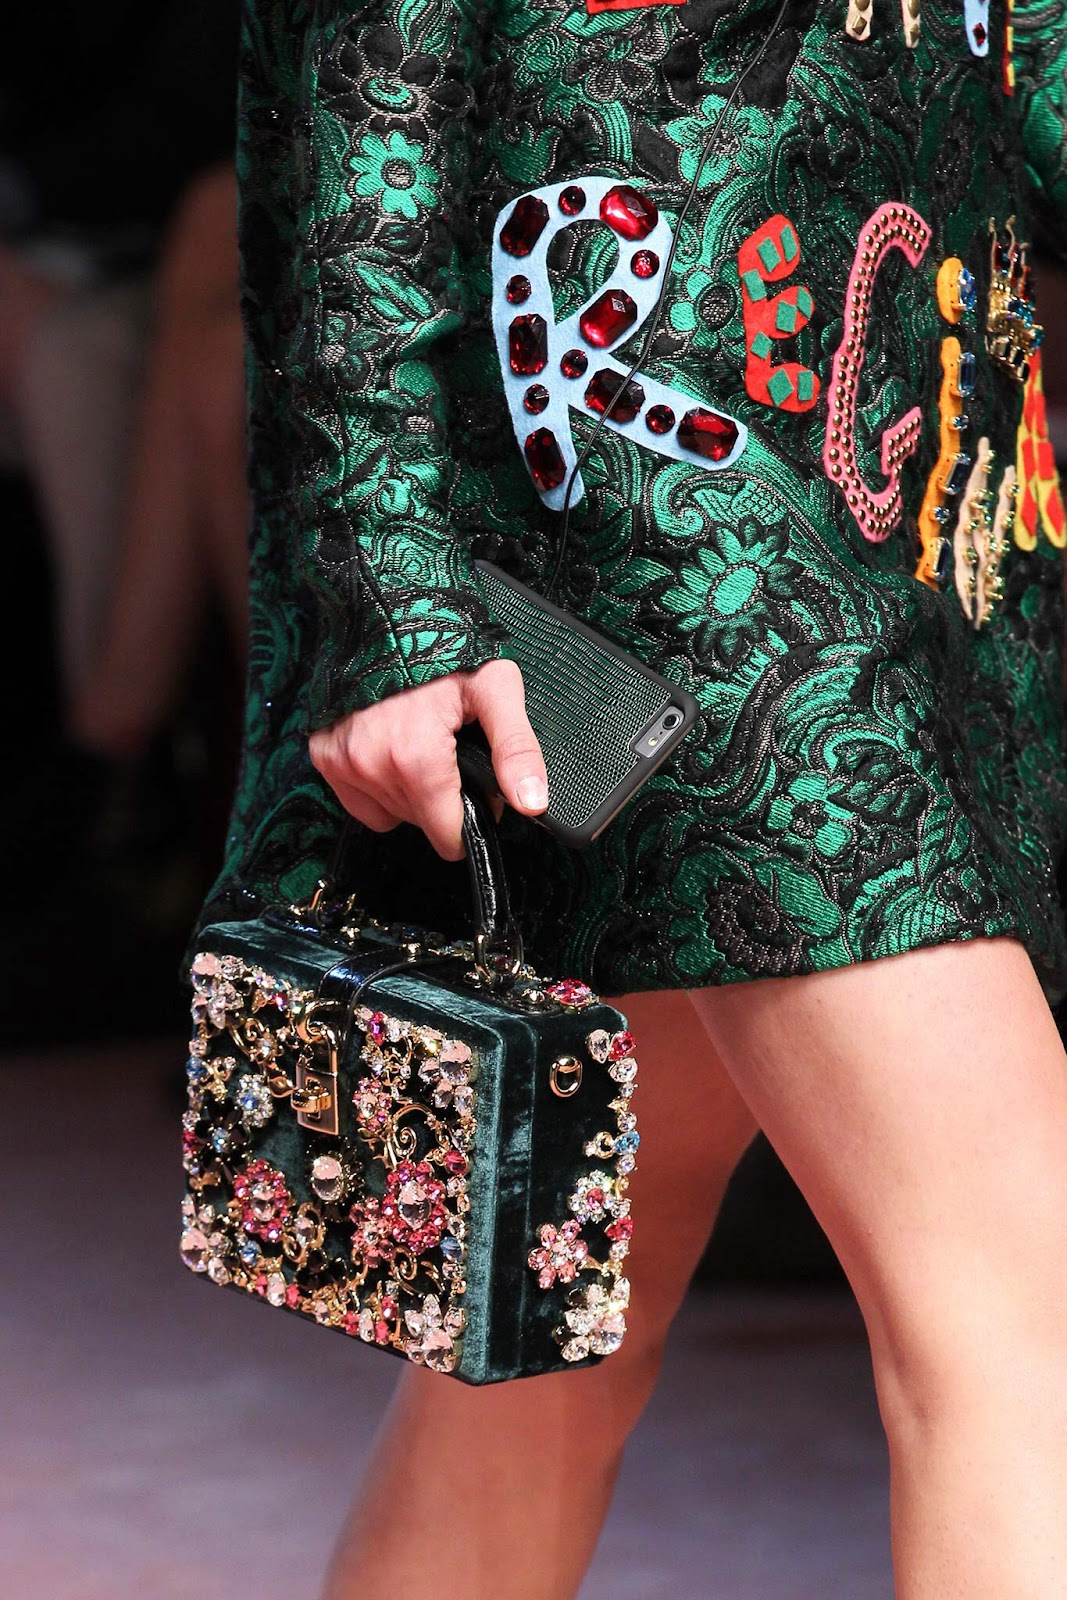 Dolce & Gabbana AW15 green iPhone 6 case | Photo: Marcus Tondo / Indigitalimages.com